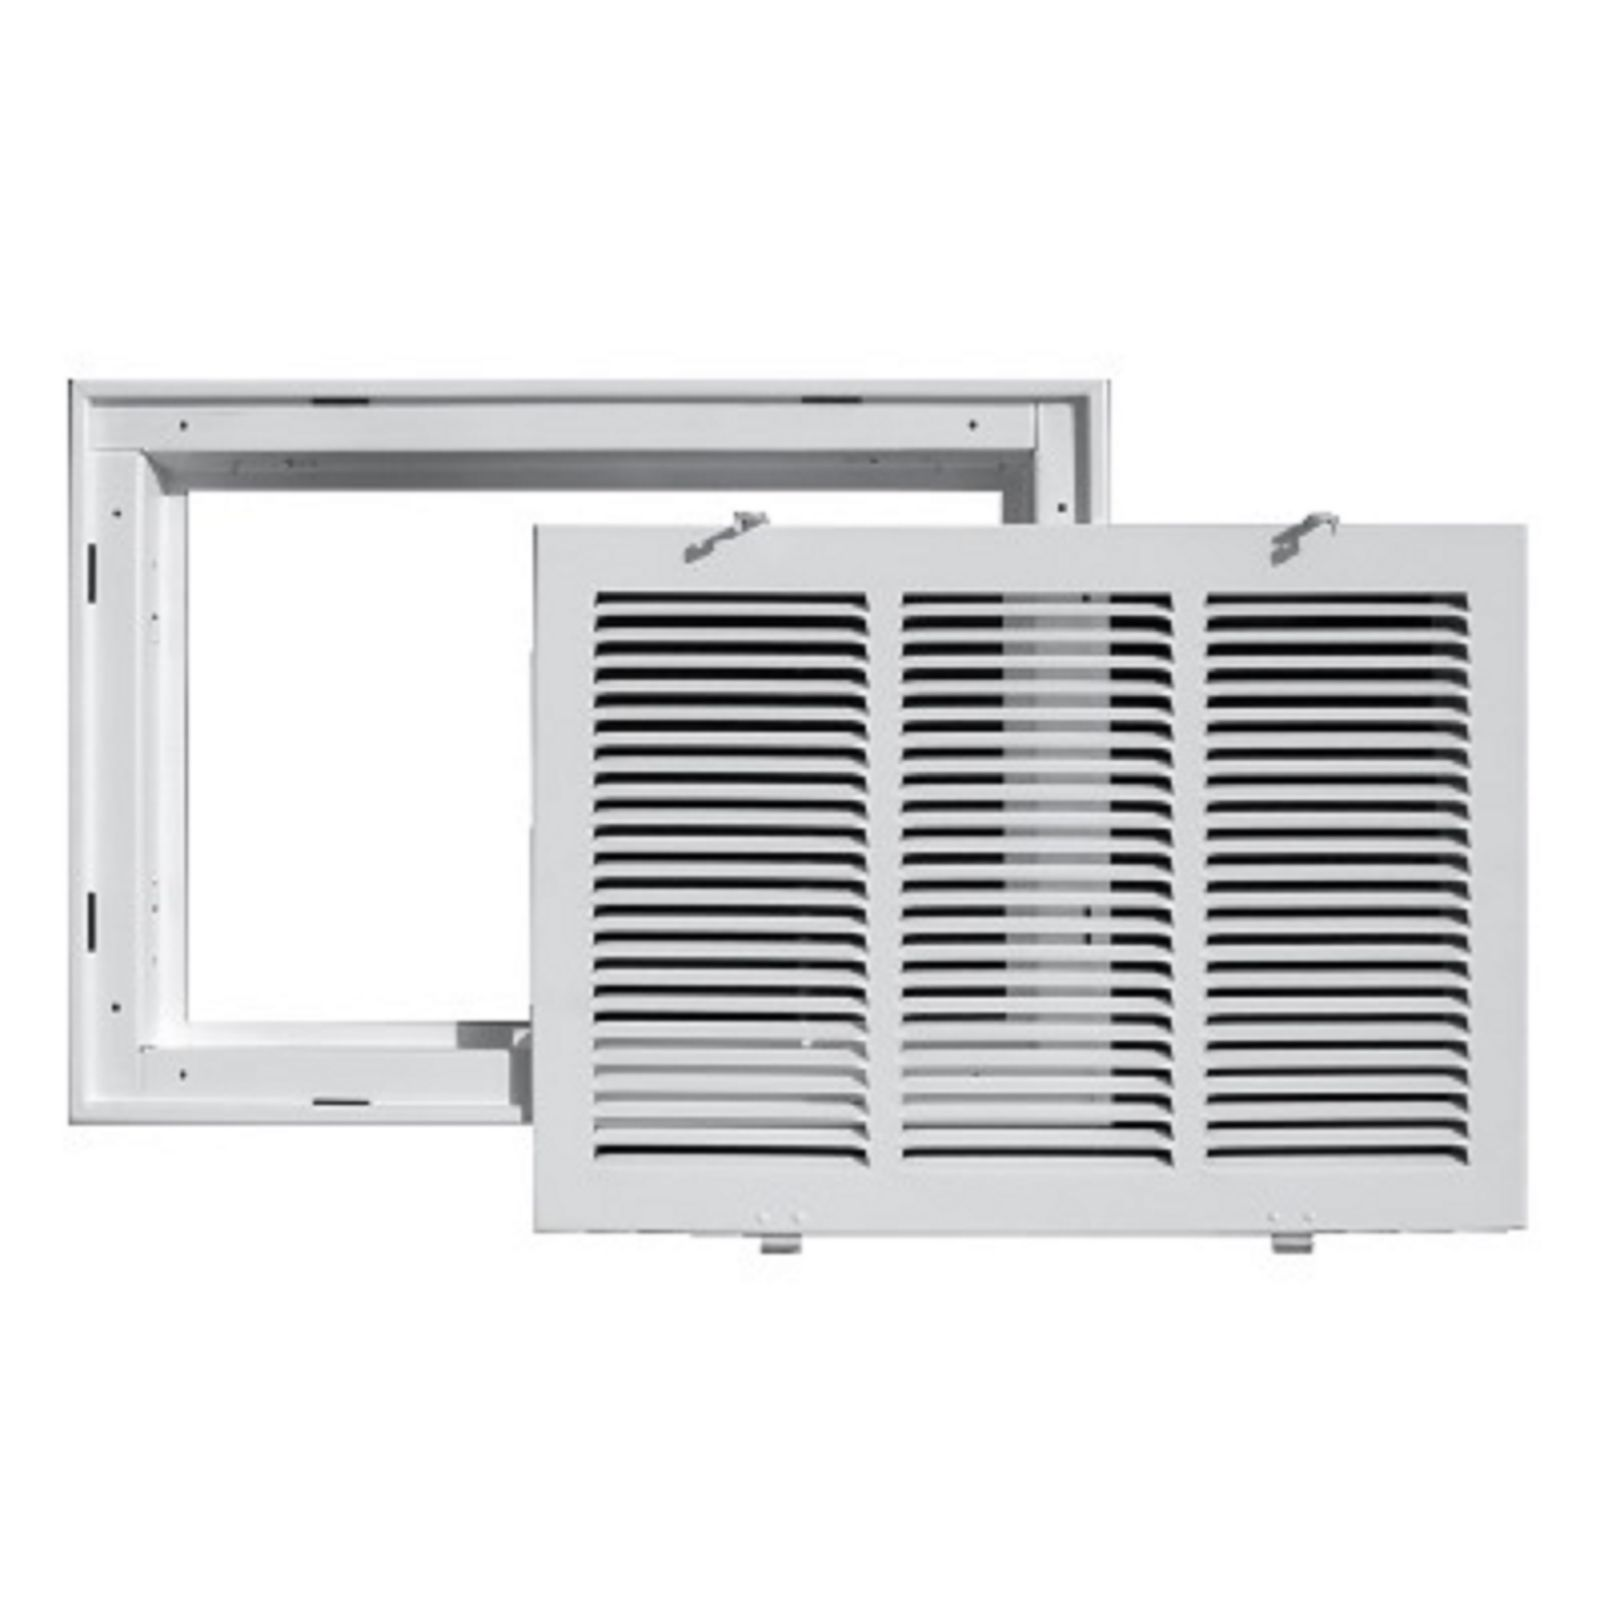 "TRUaire 190RF 18X18 - Steel Return Air Filter Grille With Removable Face, White, 18"" X 18"""